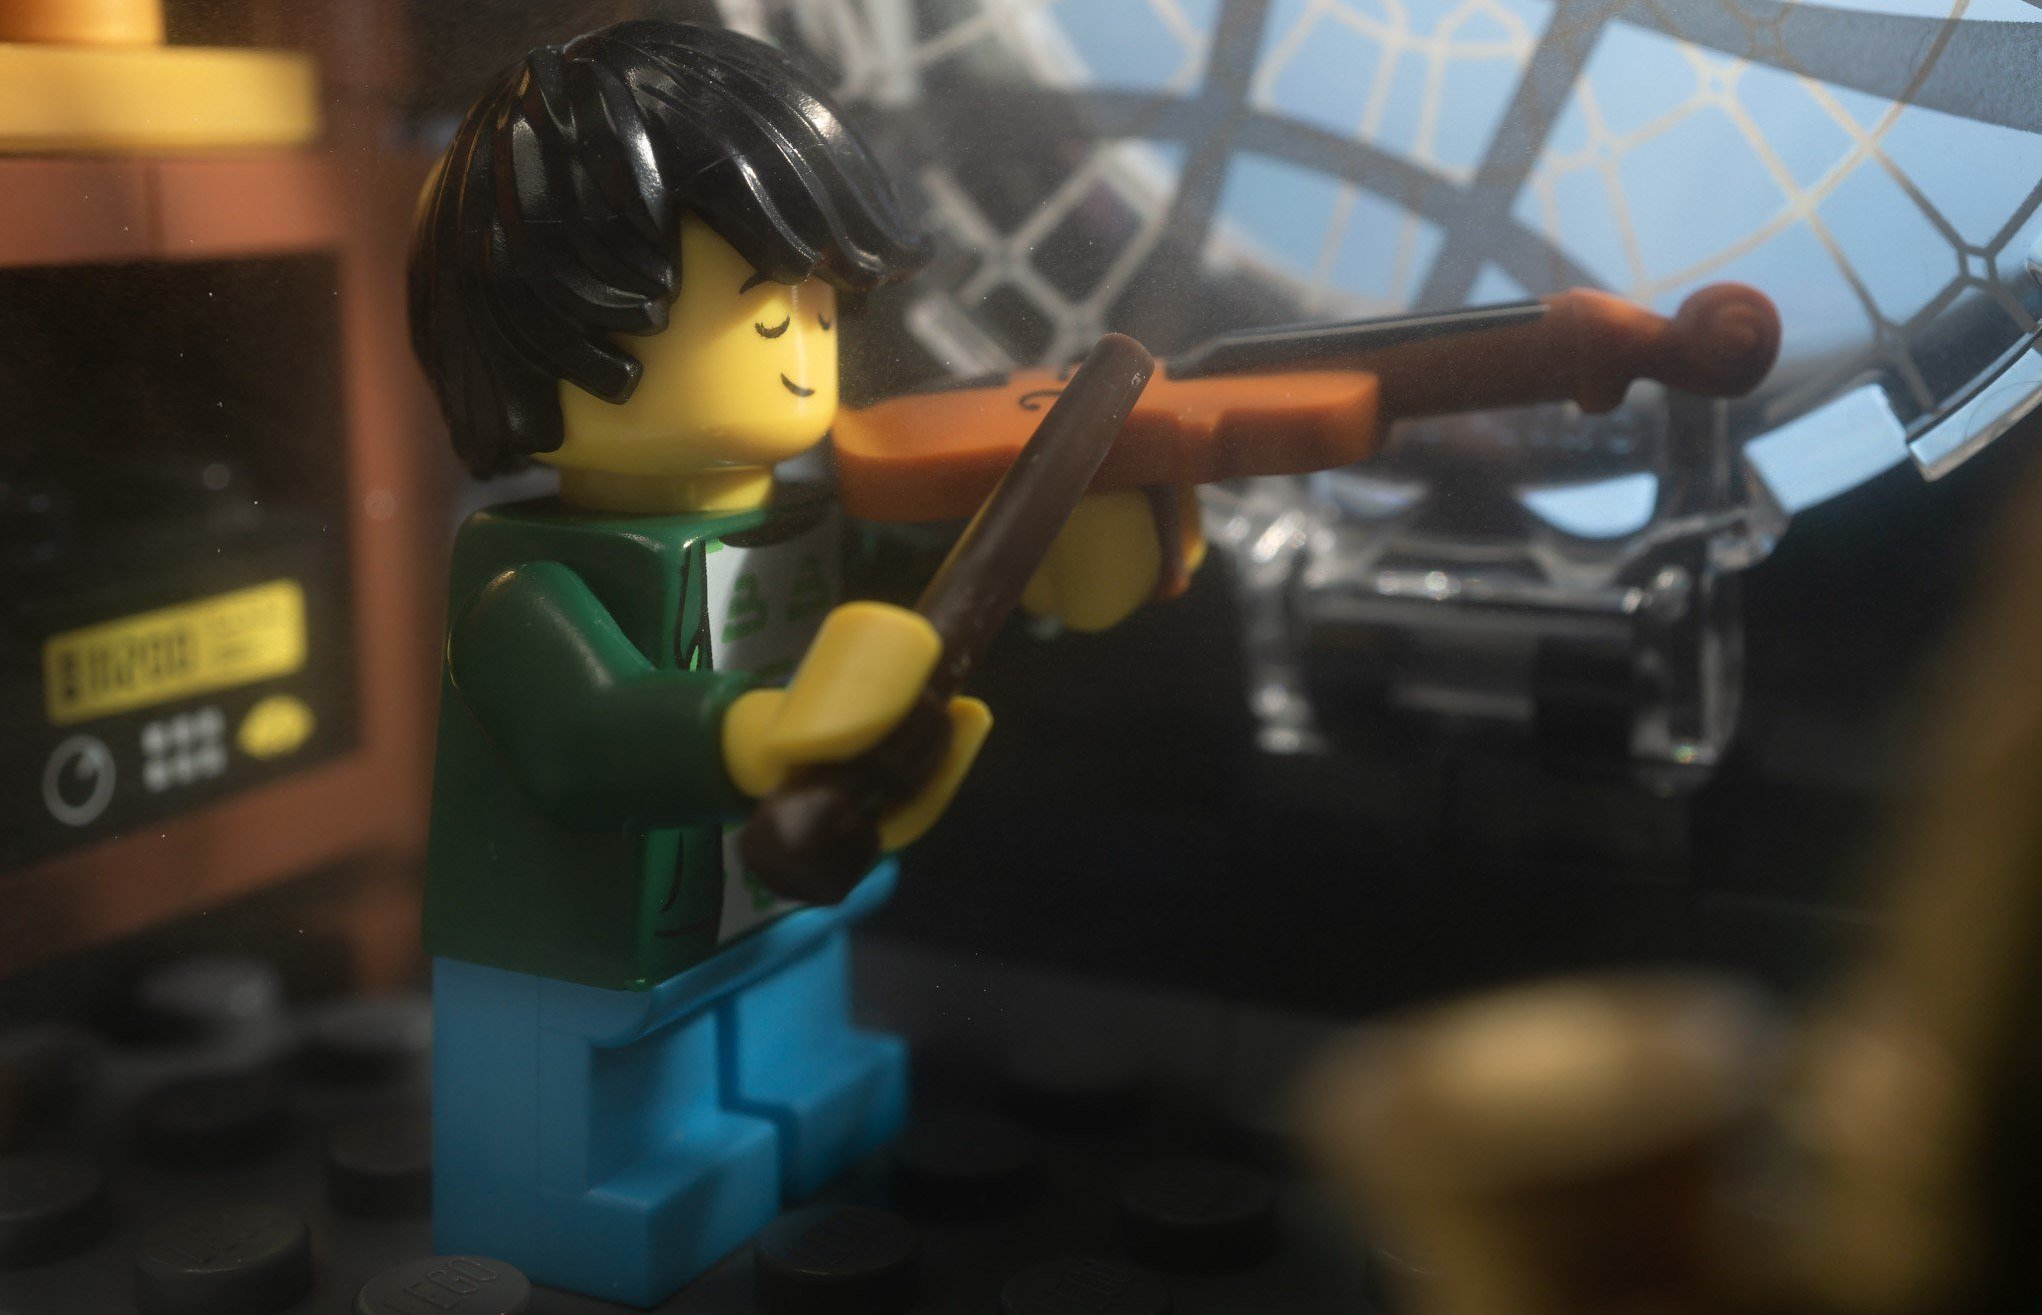 A LEGO playing the violin.